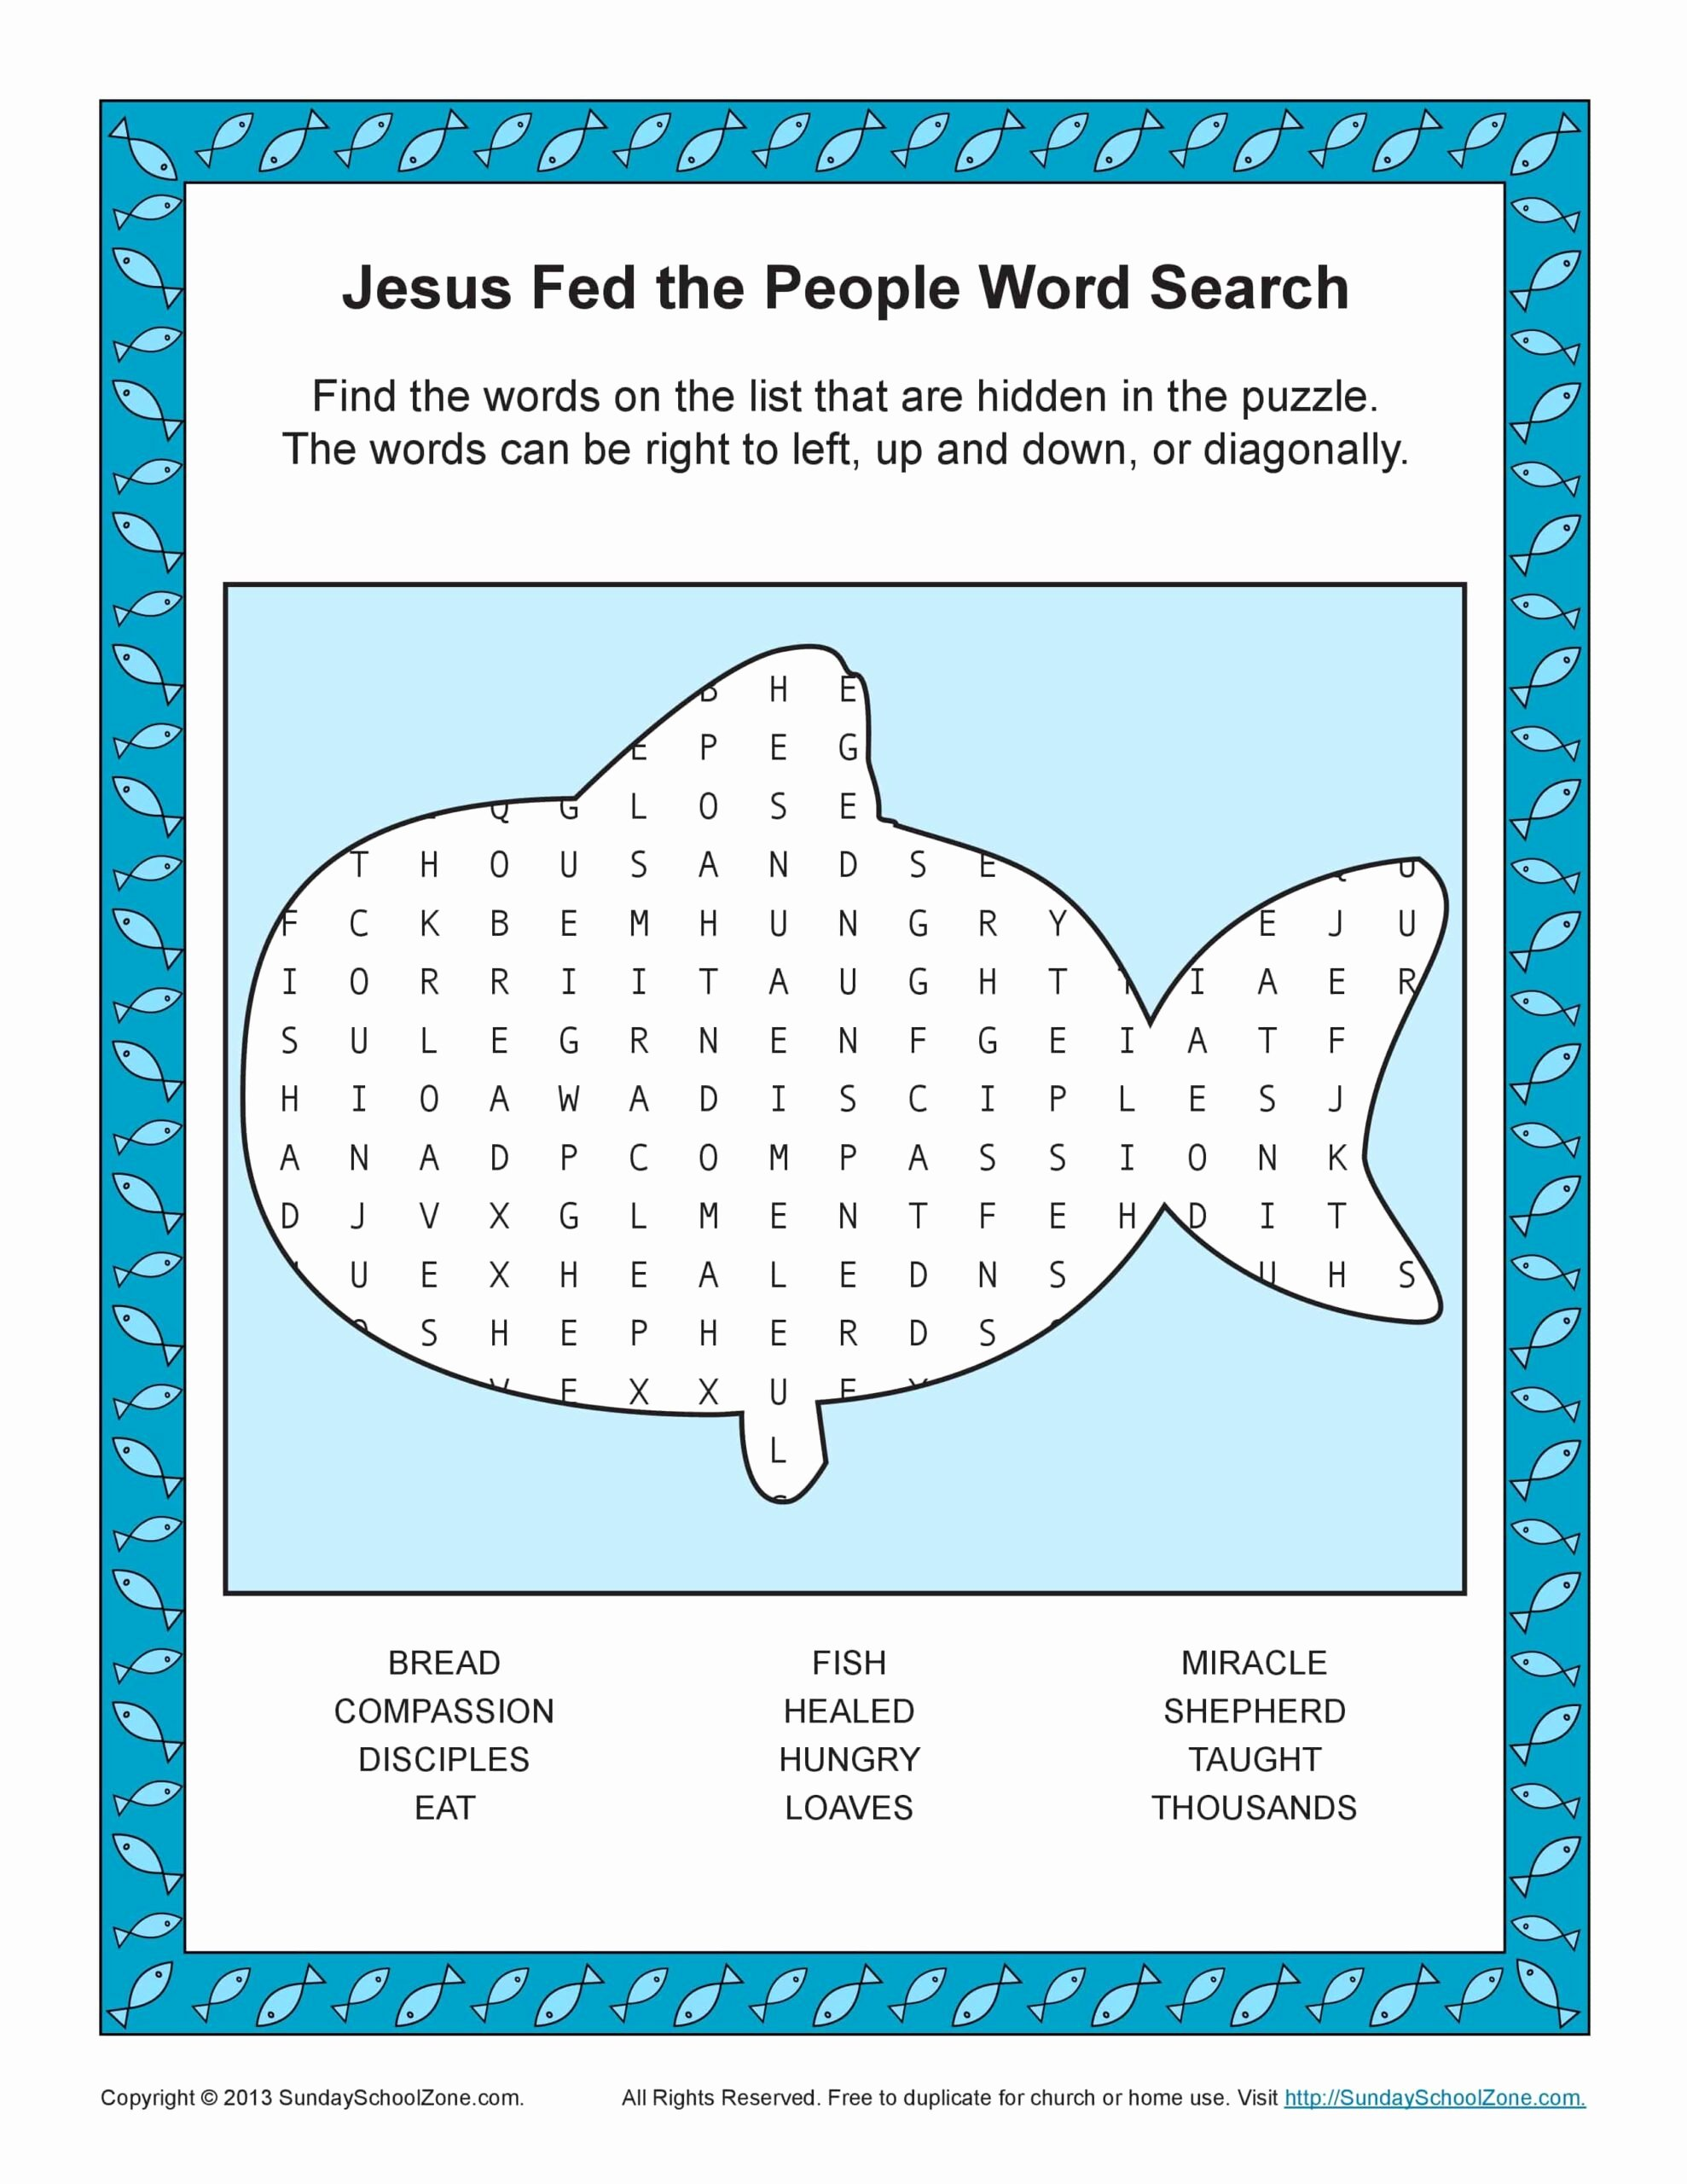 Bible Story Worksheets for Preschoolers Ideas Free Printable Bible Word Search Activities Sunday School